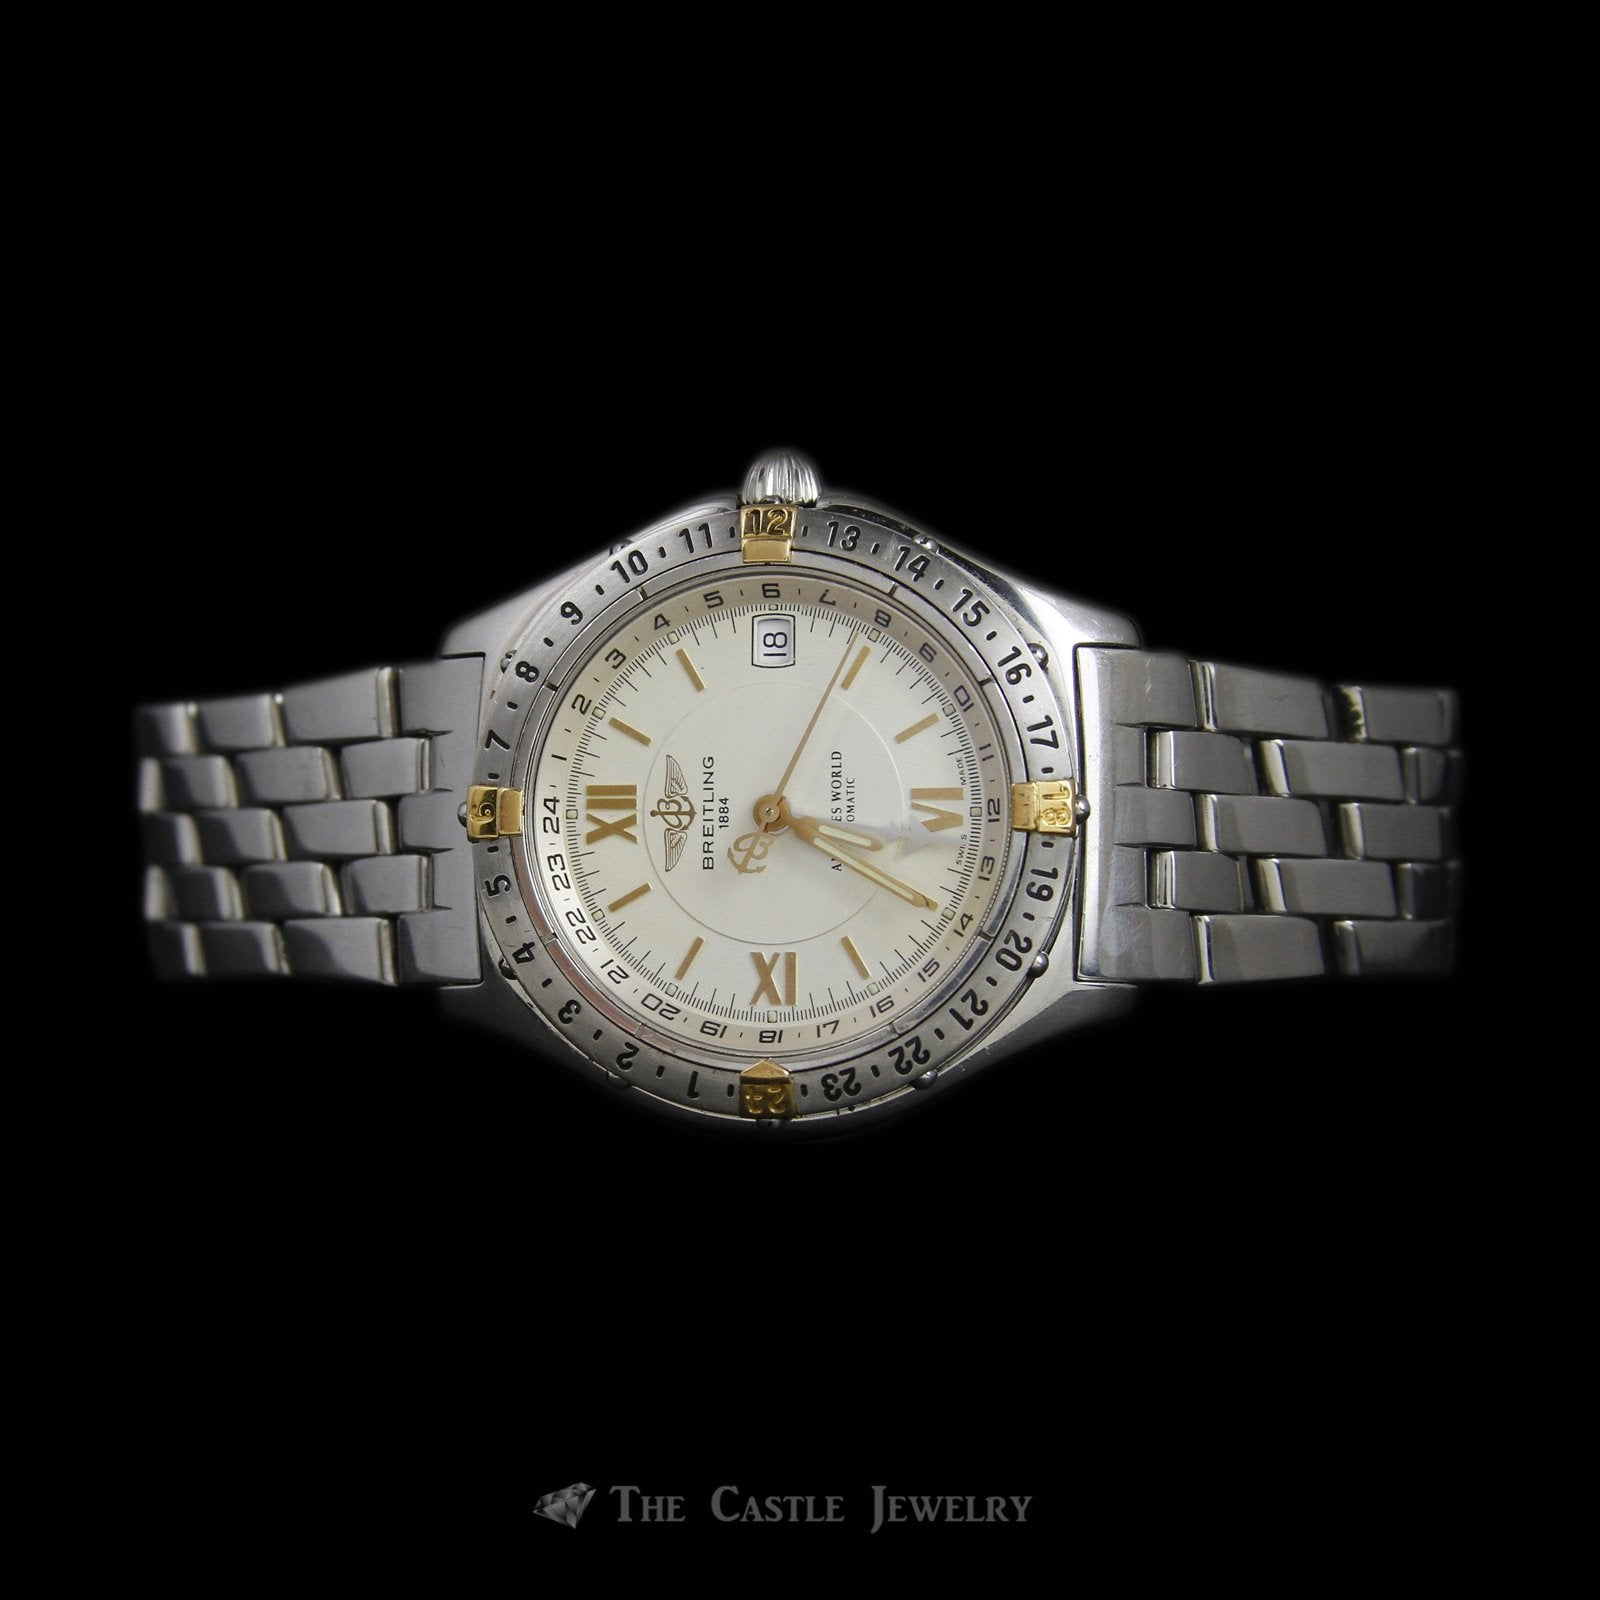 Rare Stainless Steel & 18K Breitling Antares World Watch w/ Gold Dial & Rotating Bezel-2